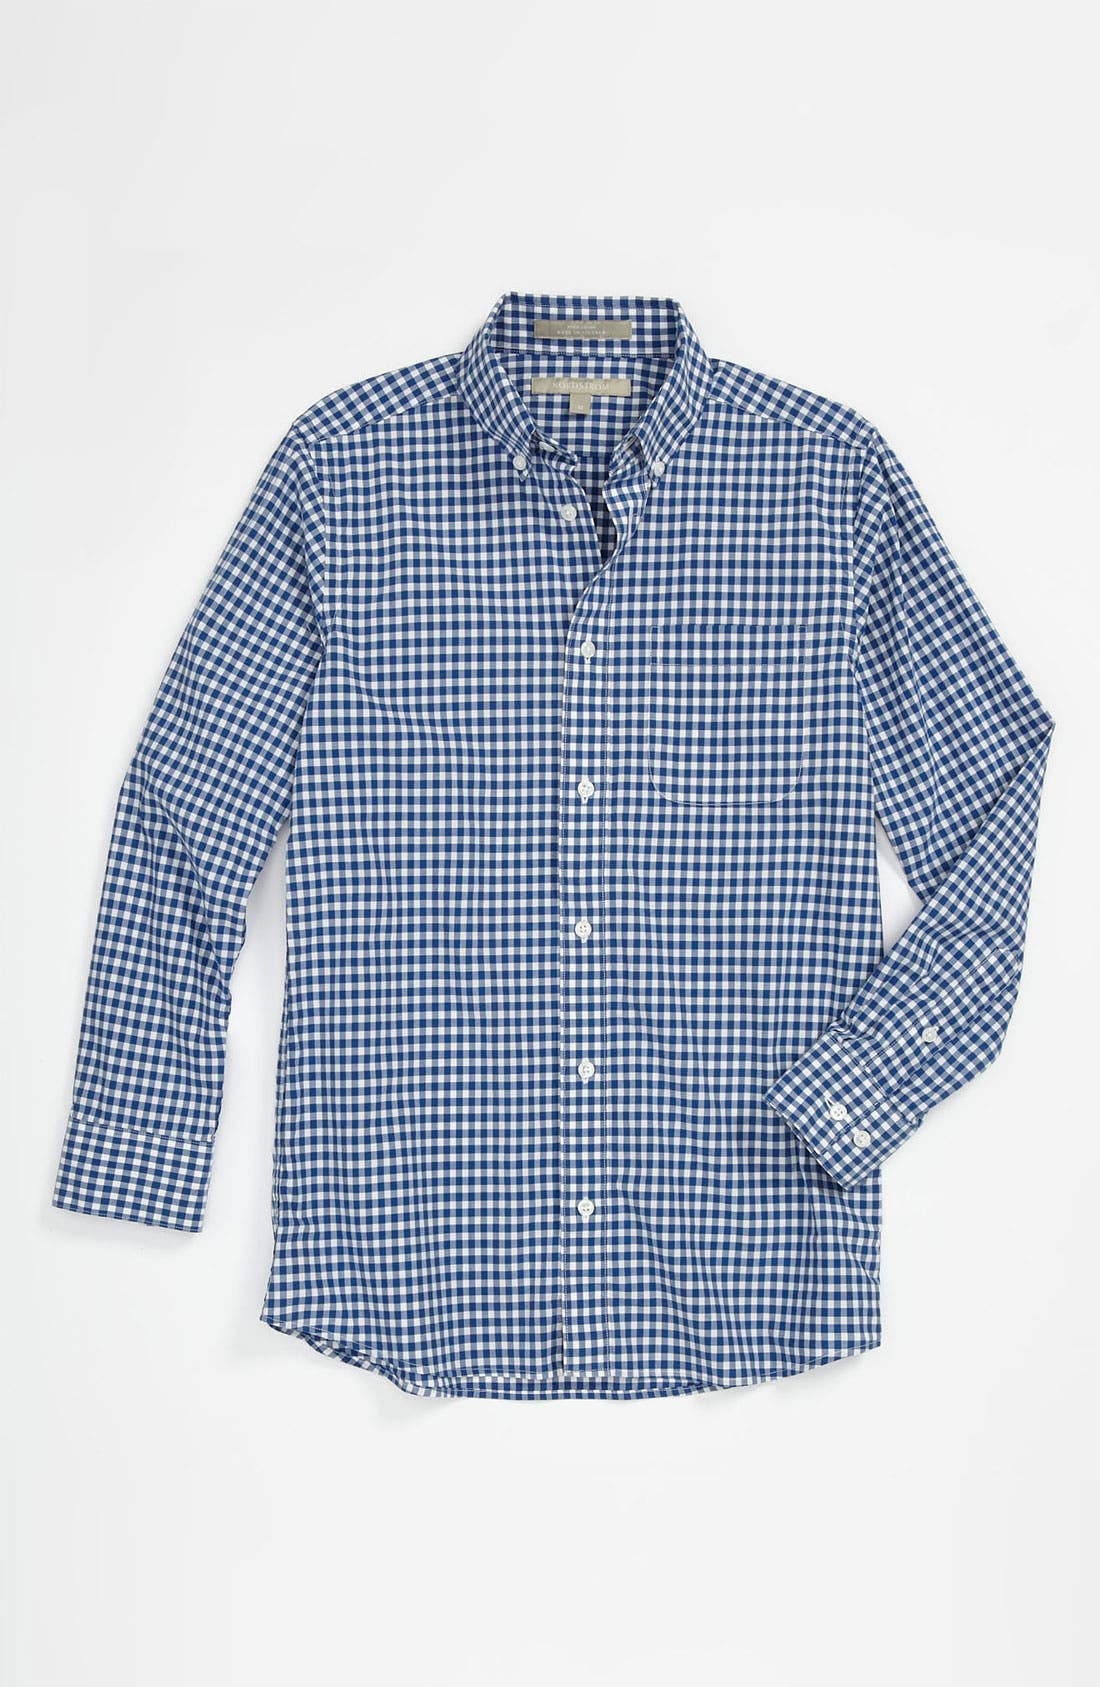 Alternate Image 1 Selected - Nordstrom Gingham Dress Shirt (Big Boys)